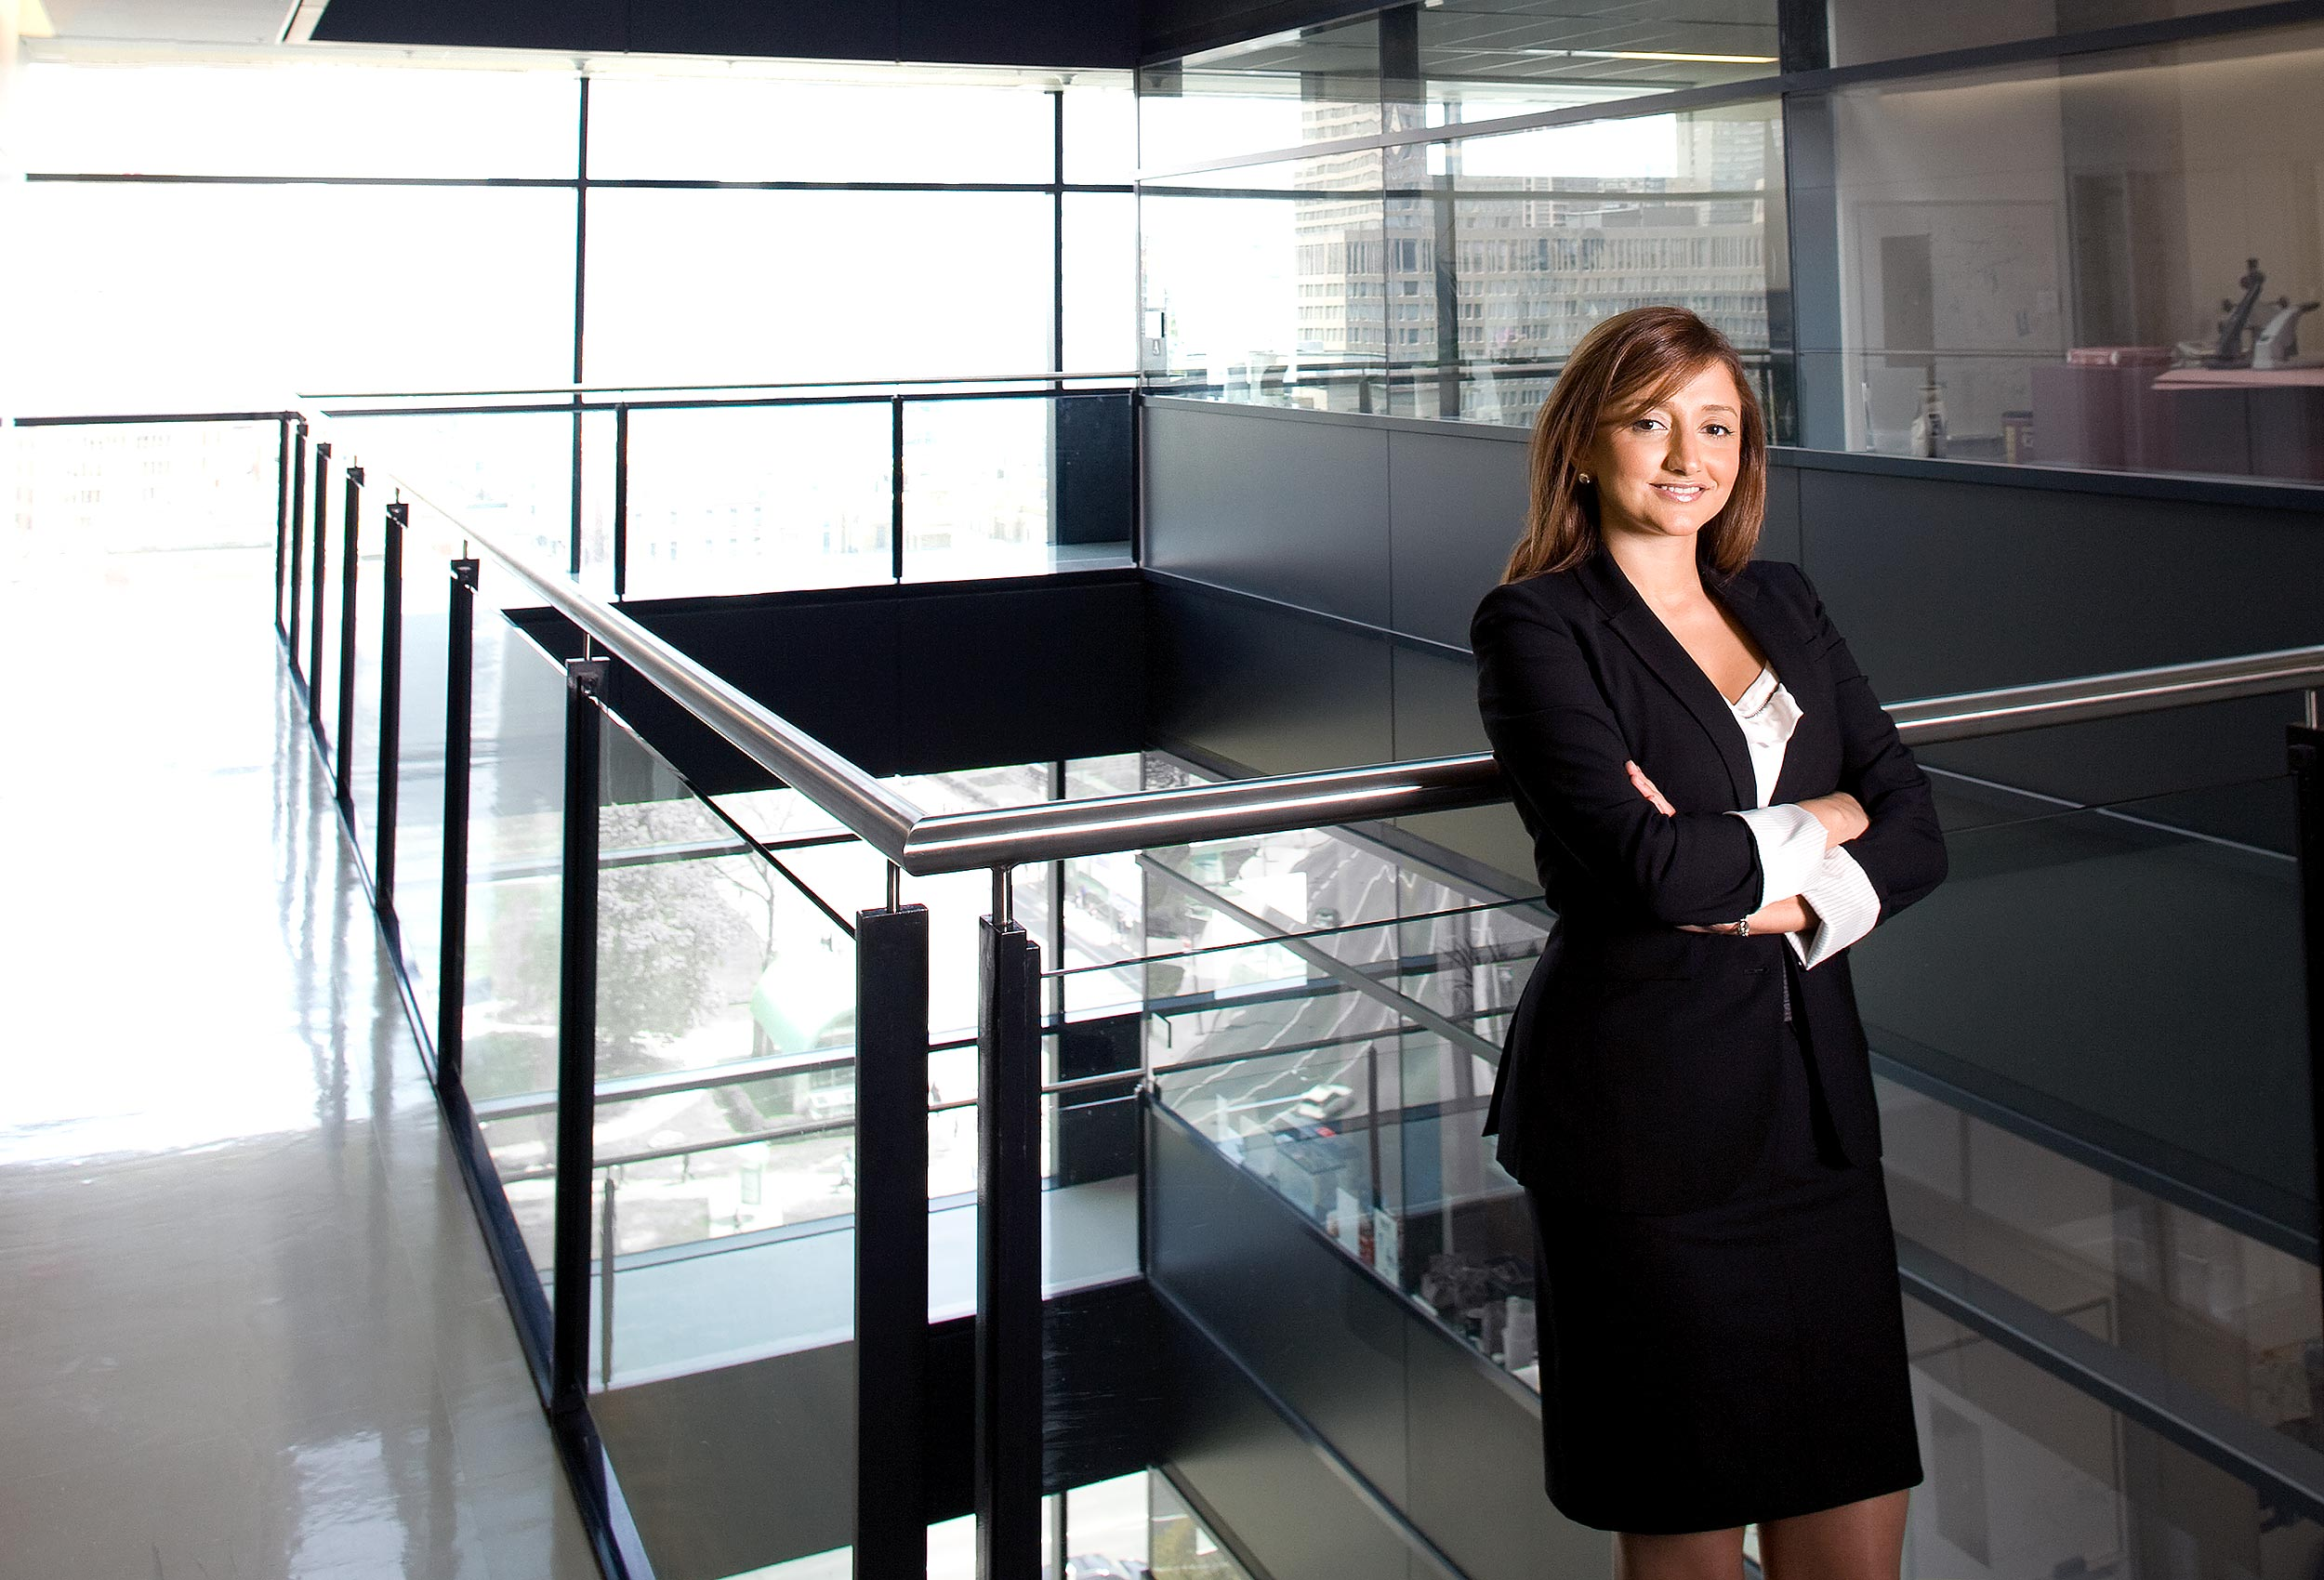 a-toronto-womans-business-portrait-at-the-university-of-toronto